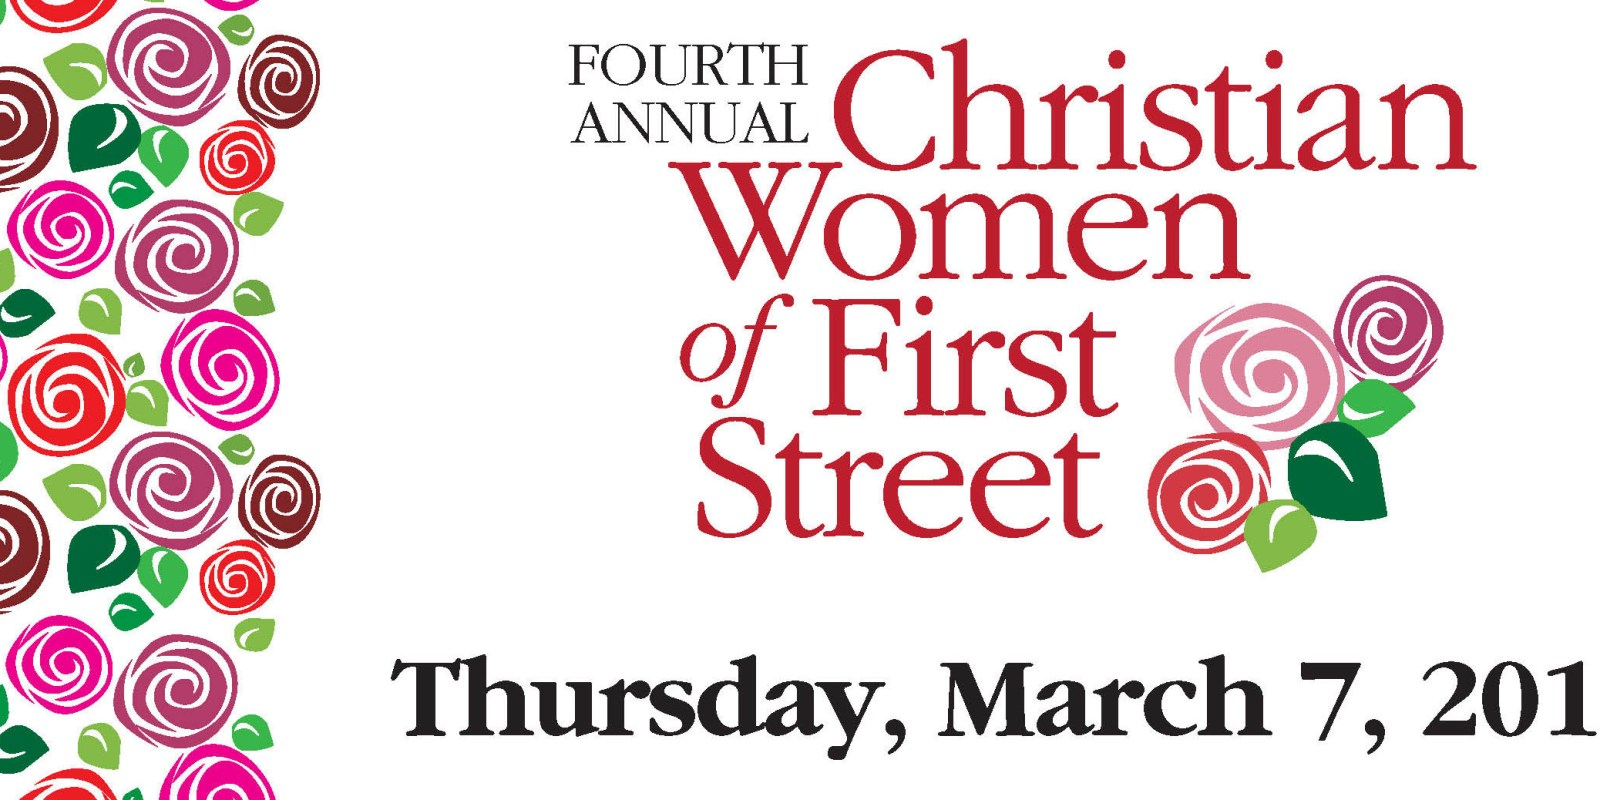 Join the ladies of First St. in prayer